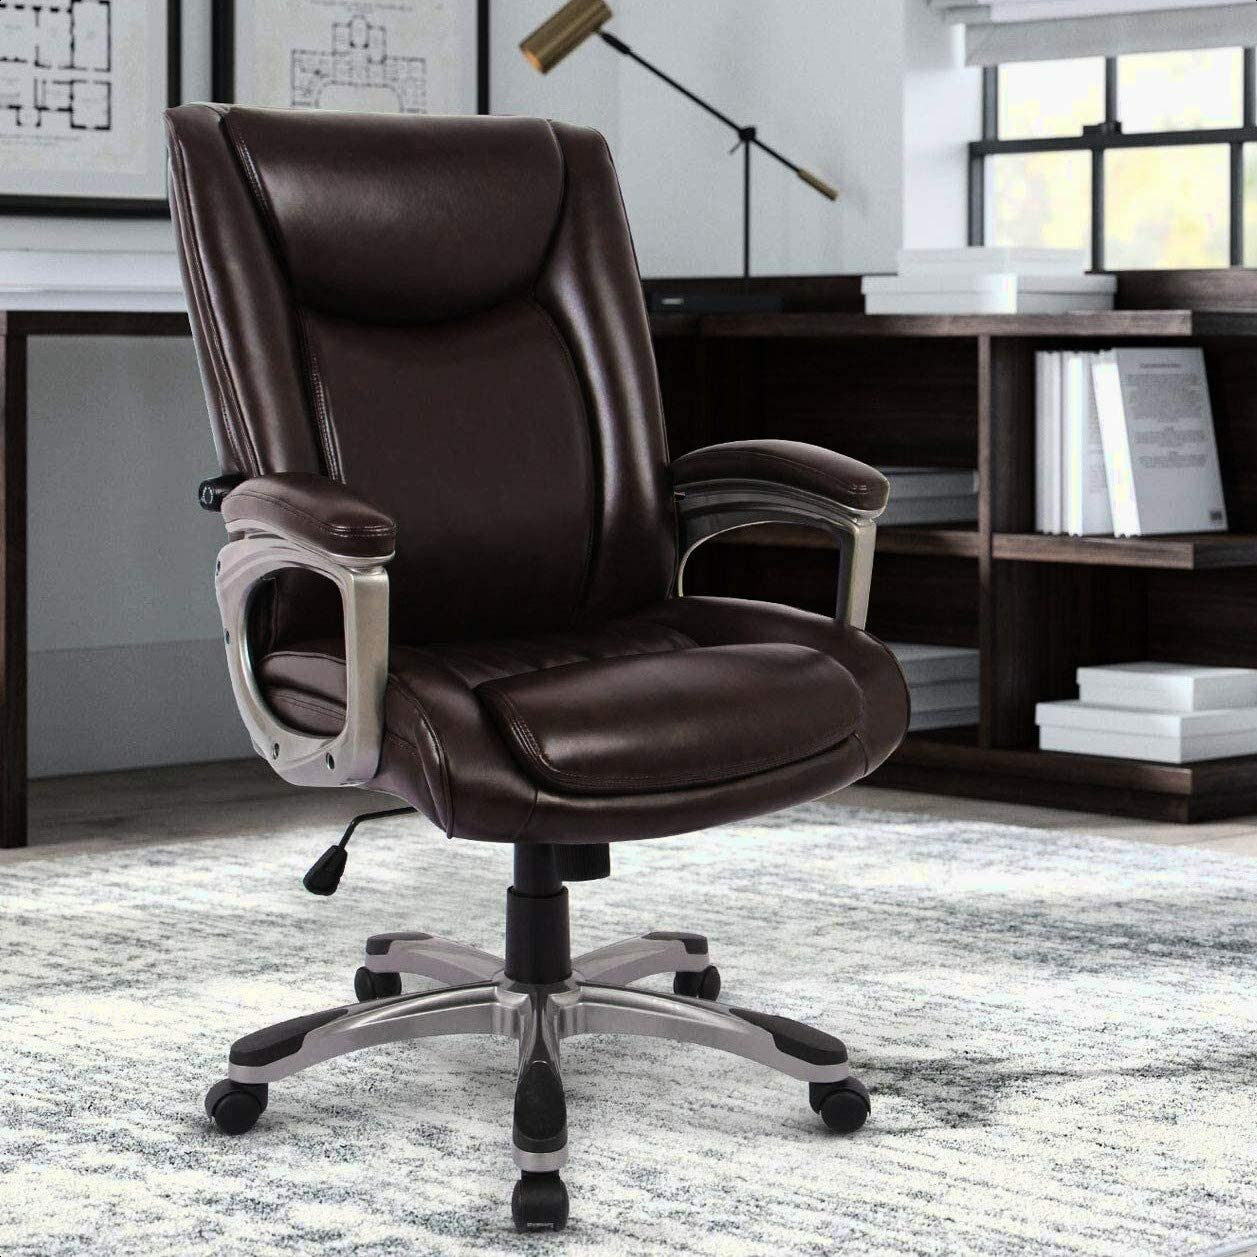 Office Ergonomic Faux Max All items free shipping 51% OFF Fur Executive Chair Tilt Ba Center